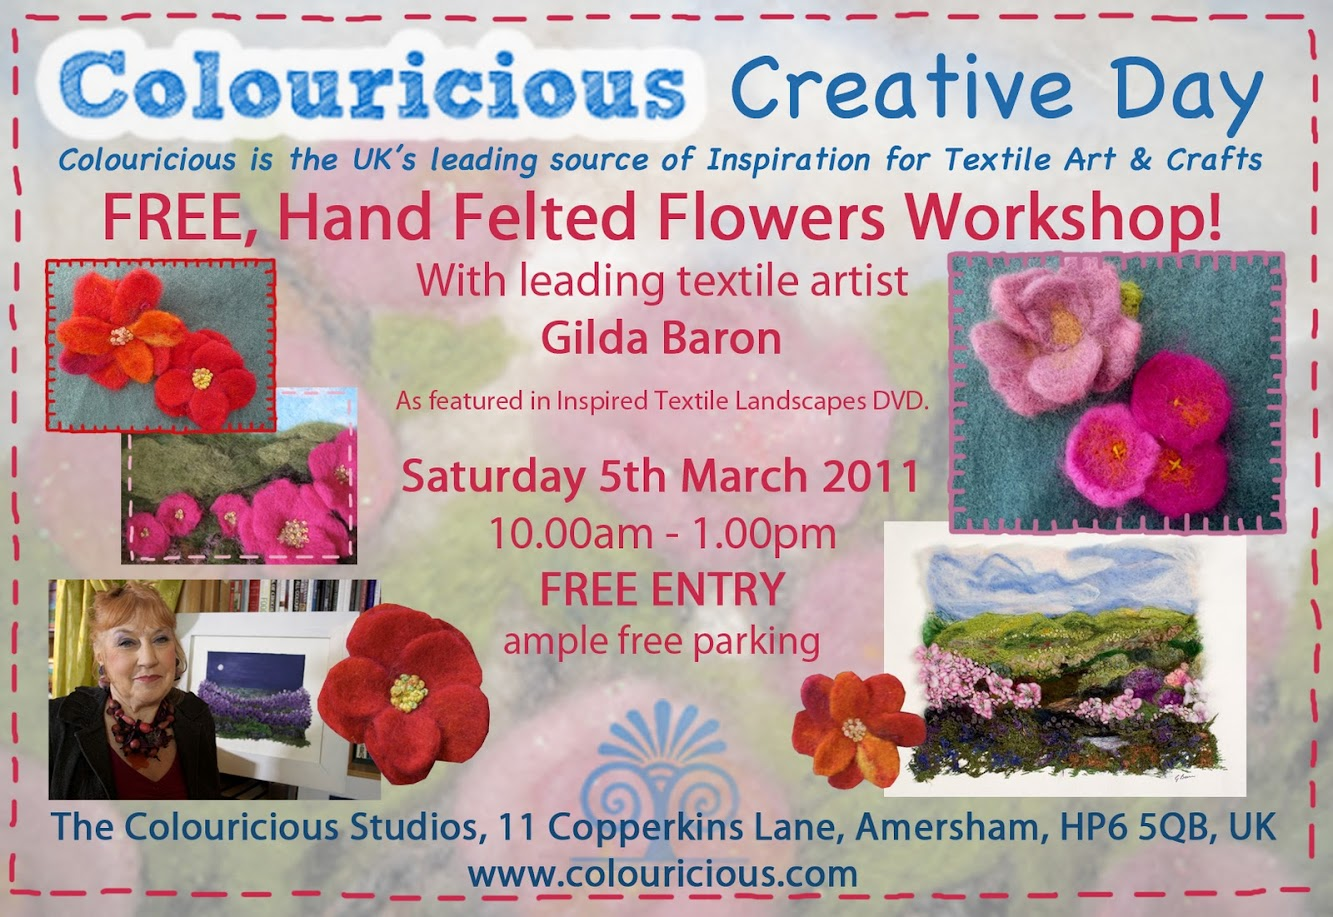 FREE Hand Felted Flowers Workshop!